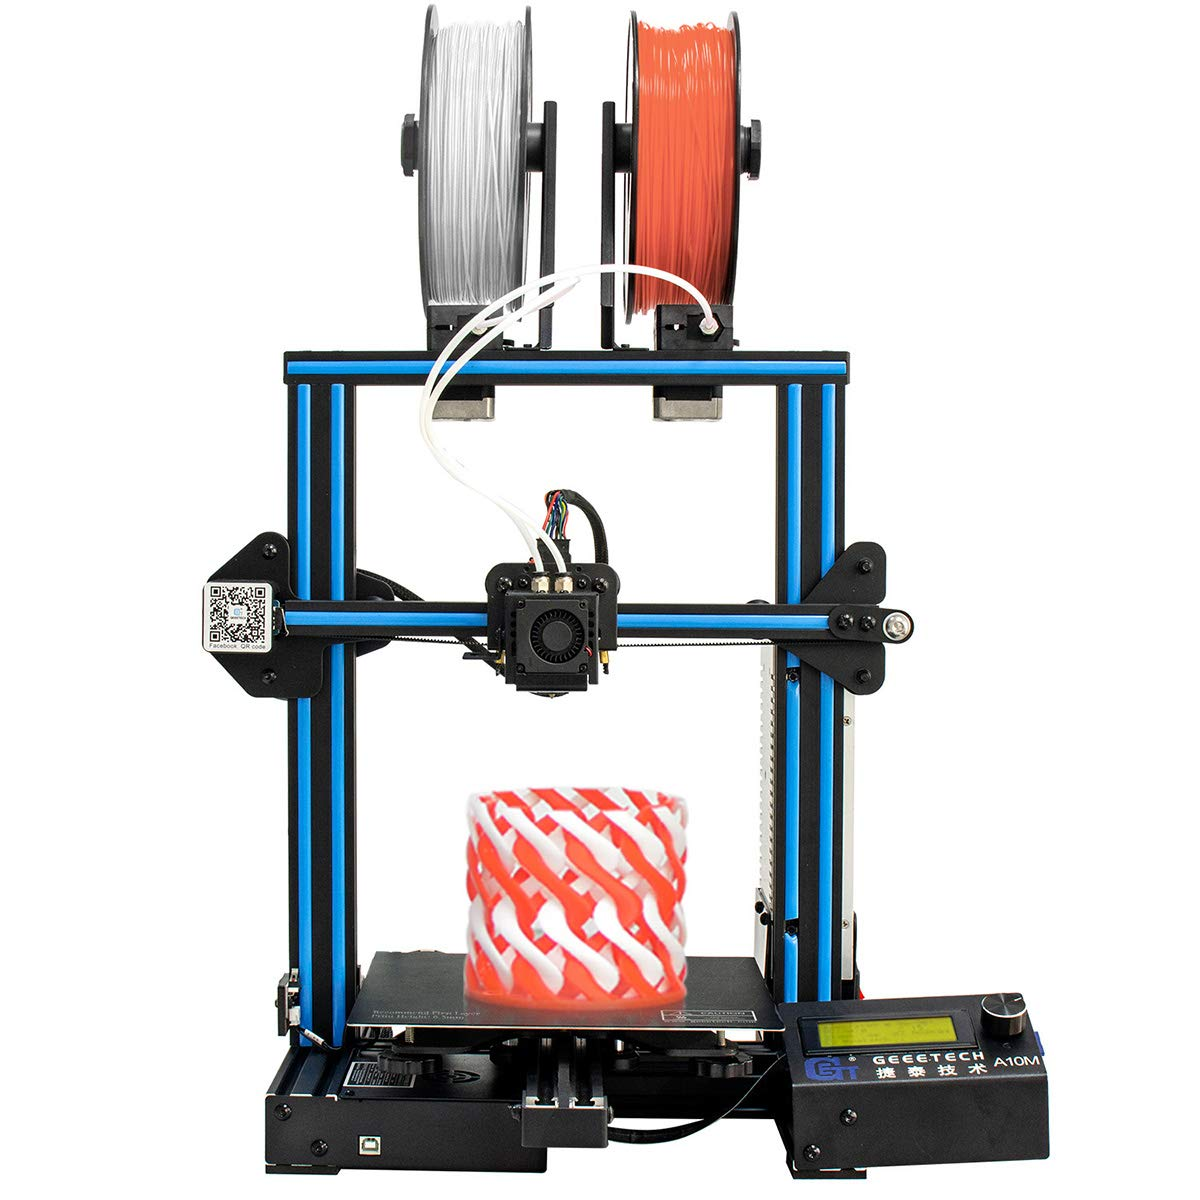 GIANTARM-GEEETECH A10M 3D Printer with Mix-Color Printing, Dual extruder Design, Filament Detector and Break-resuming Function, Prusa I3 Quick ...